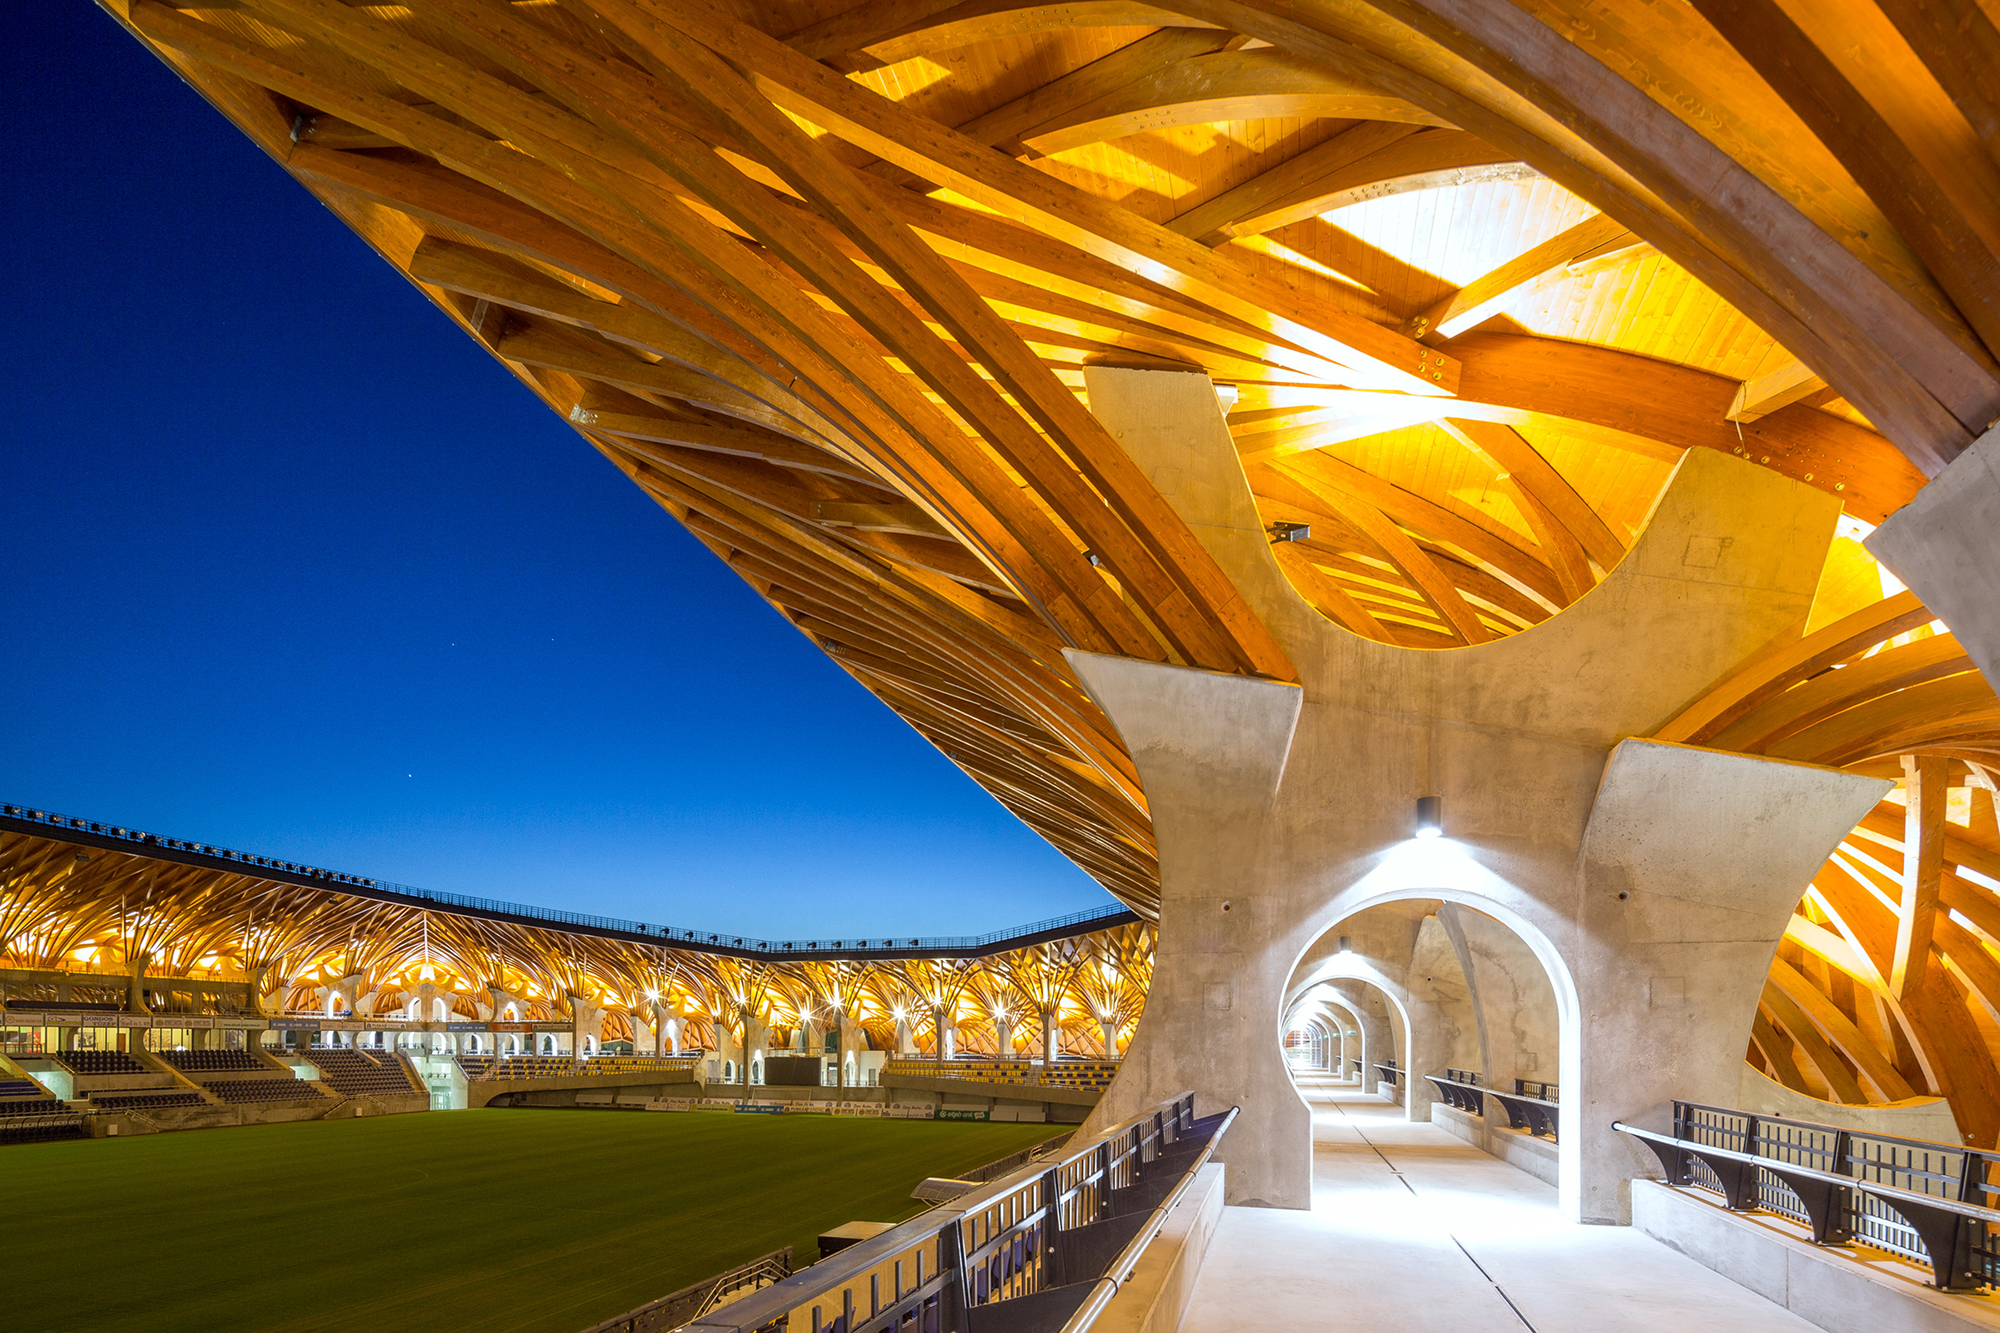 Innovative detail pancho arena architect magazine for The architect